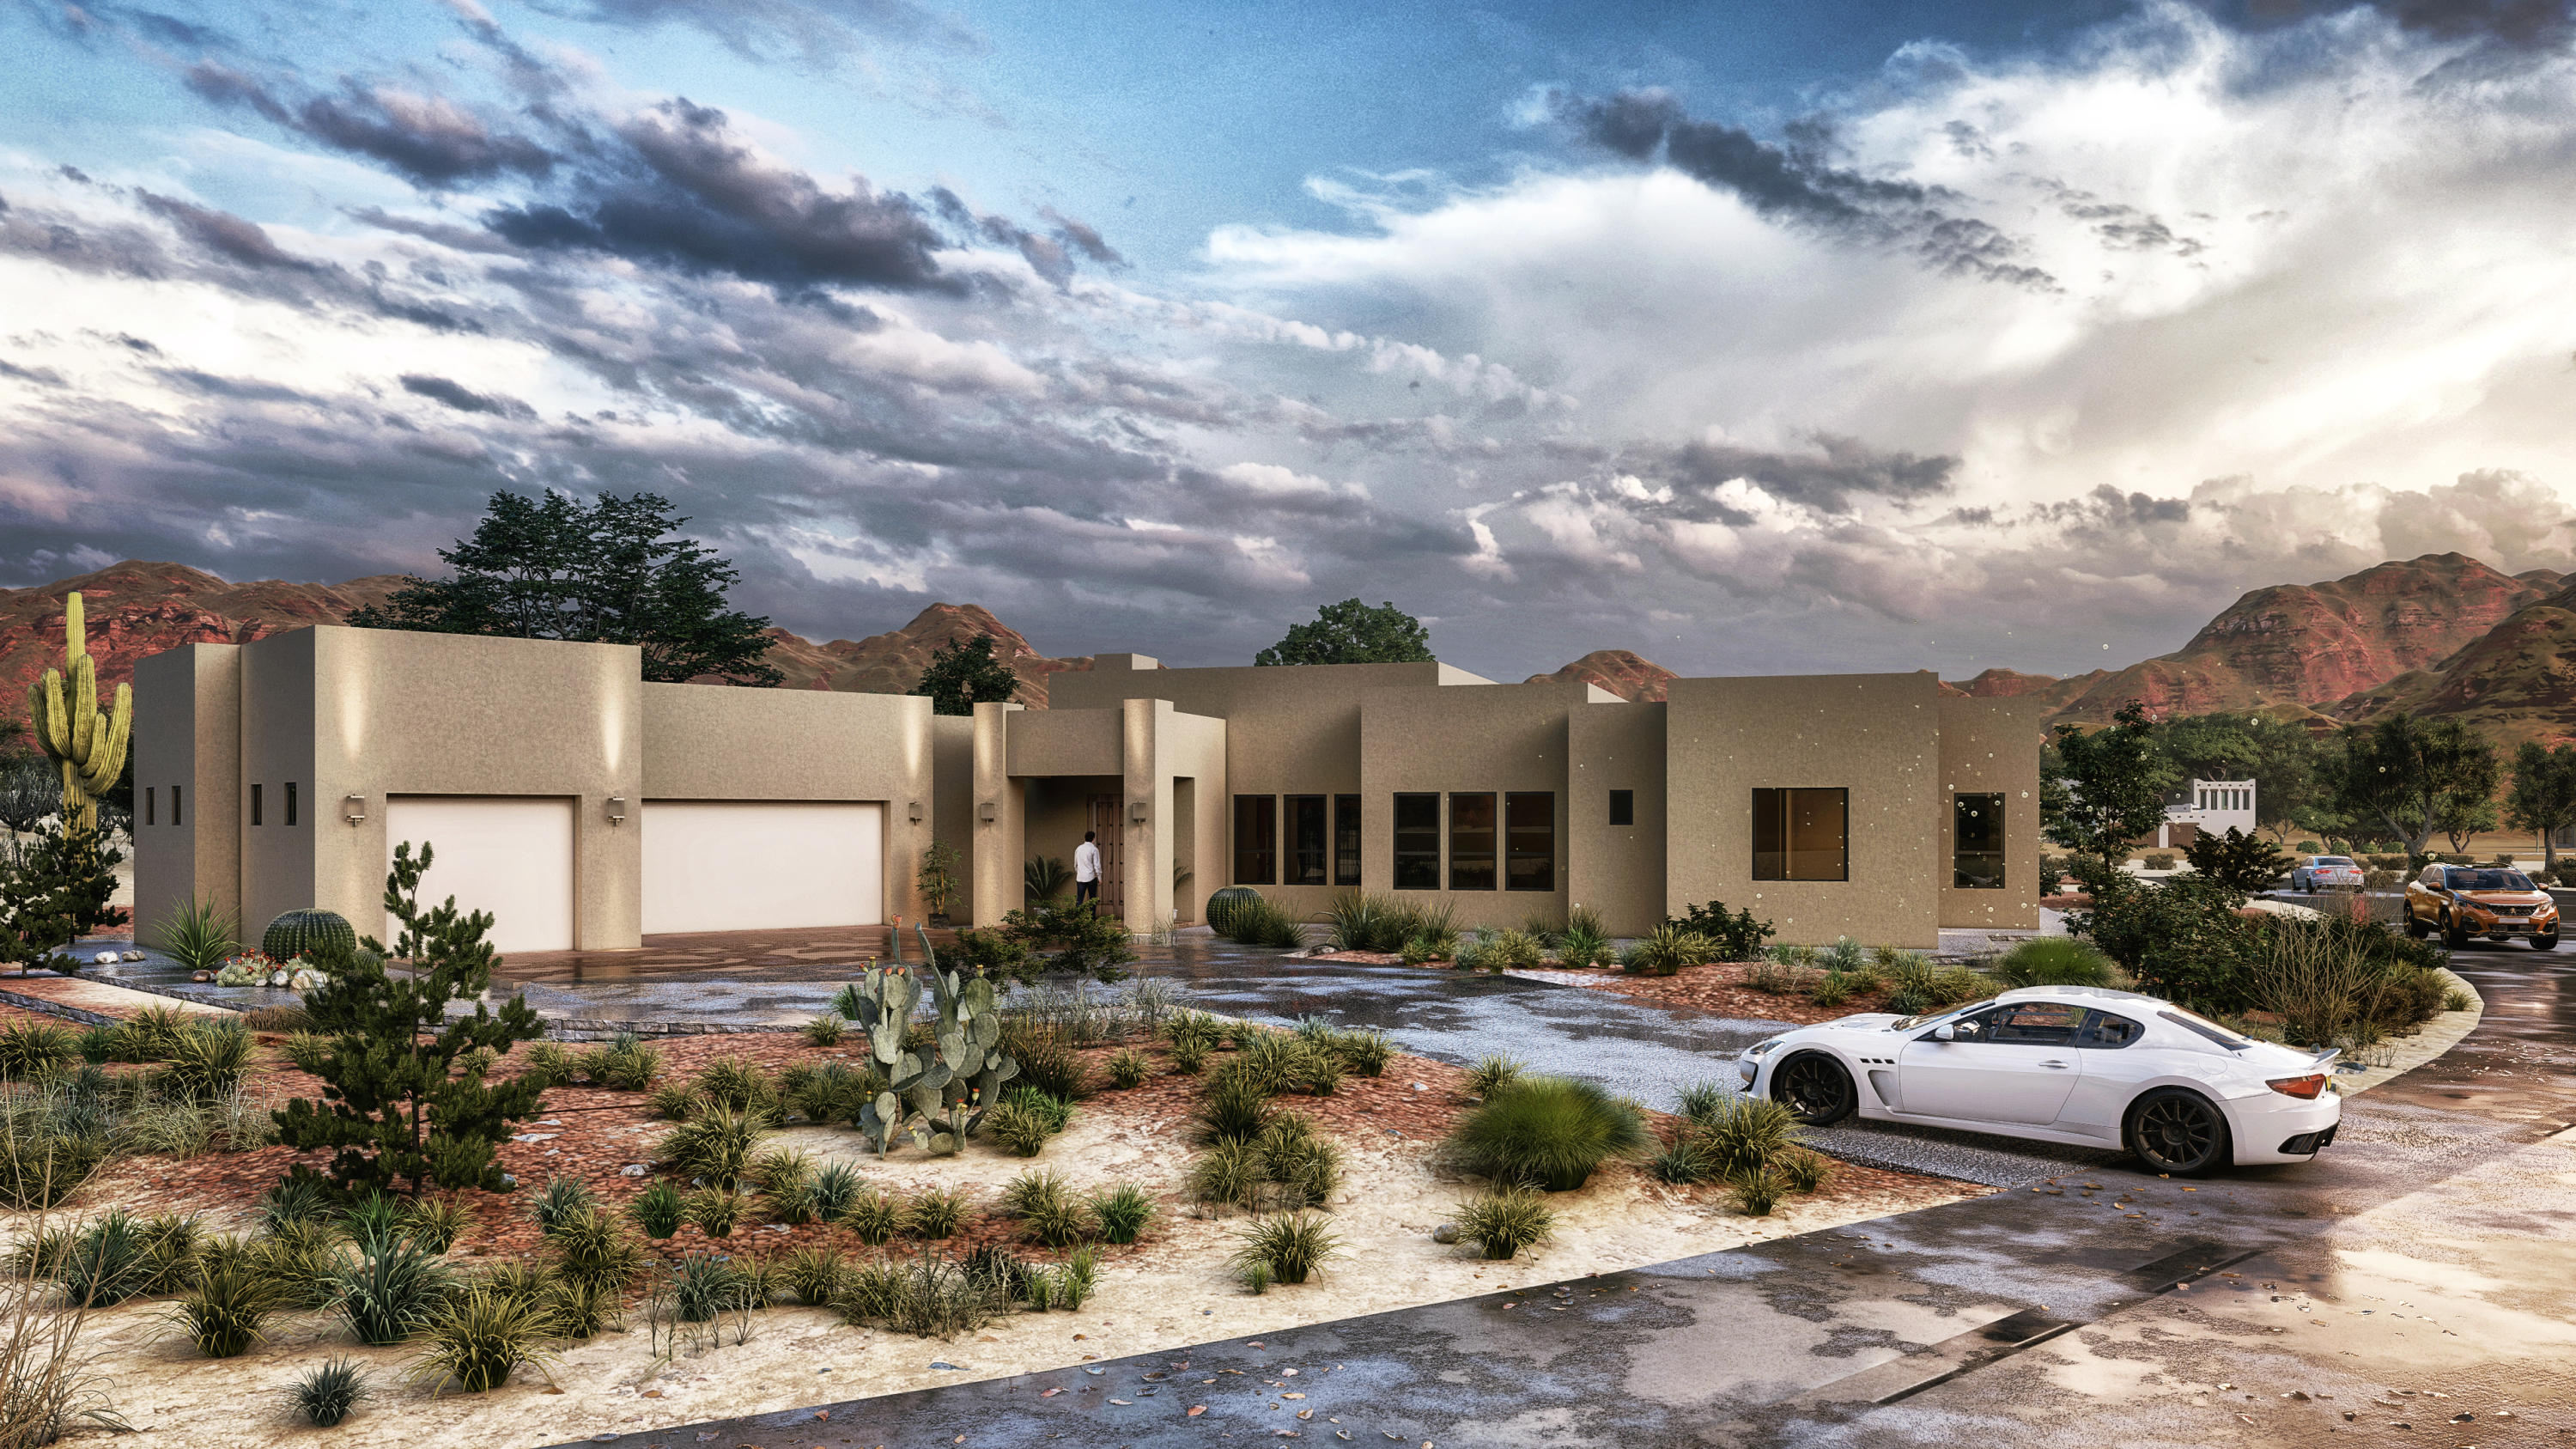 Another exceptional custom home ready to be built by Enchanted Spaces, Placitas' premier custom home builder.  As a 2020 Parade of Home's winner and Buyer's Choice Winner, Enchanted Spaces creates an amazing floor plan with a Scottsdale meets New Mexico design style.  The builder's vision starts with capturing the best that Placitas has to offer - the views!   This lot captures all 3 views-  amazing Sandia Mountain, Jemez Mountains and the city lights!  The floor plan creates minimizes wasted hallway space and features a lounge in addition to the  great room.  You'll also appreciate the oversized outdoor living space to enjoy the amazing landscapes of New Mexico.Home is currently in planning stage and buyer can resign, customize and pick all finishes.